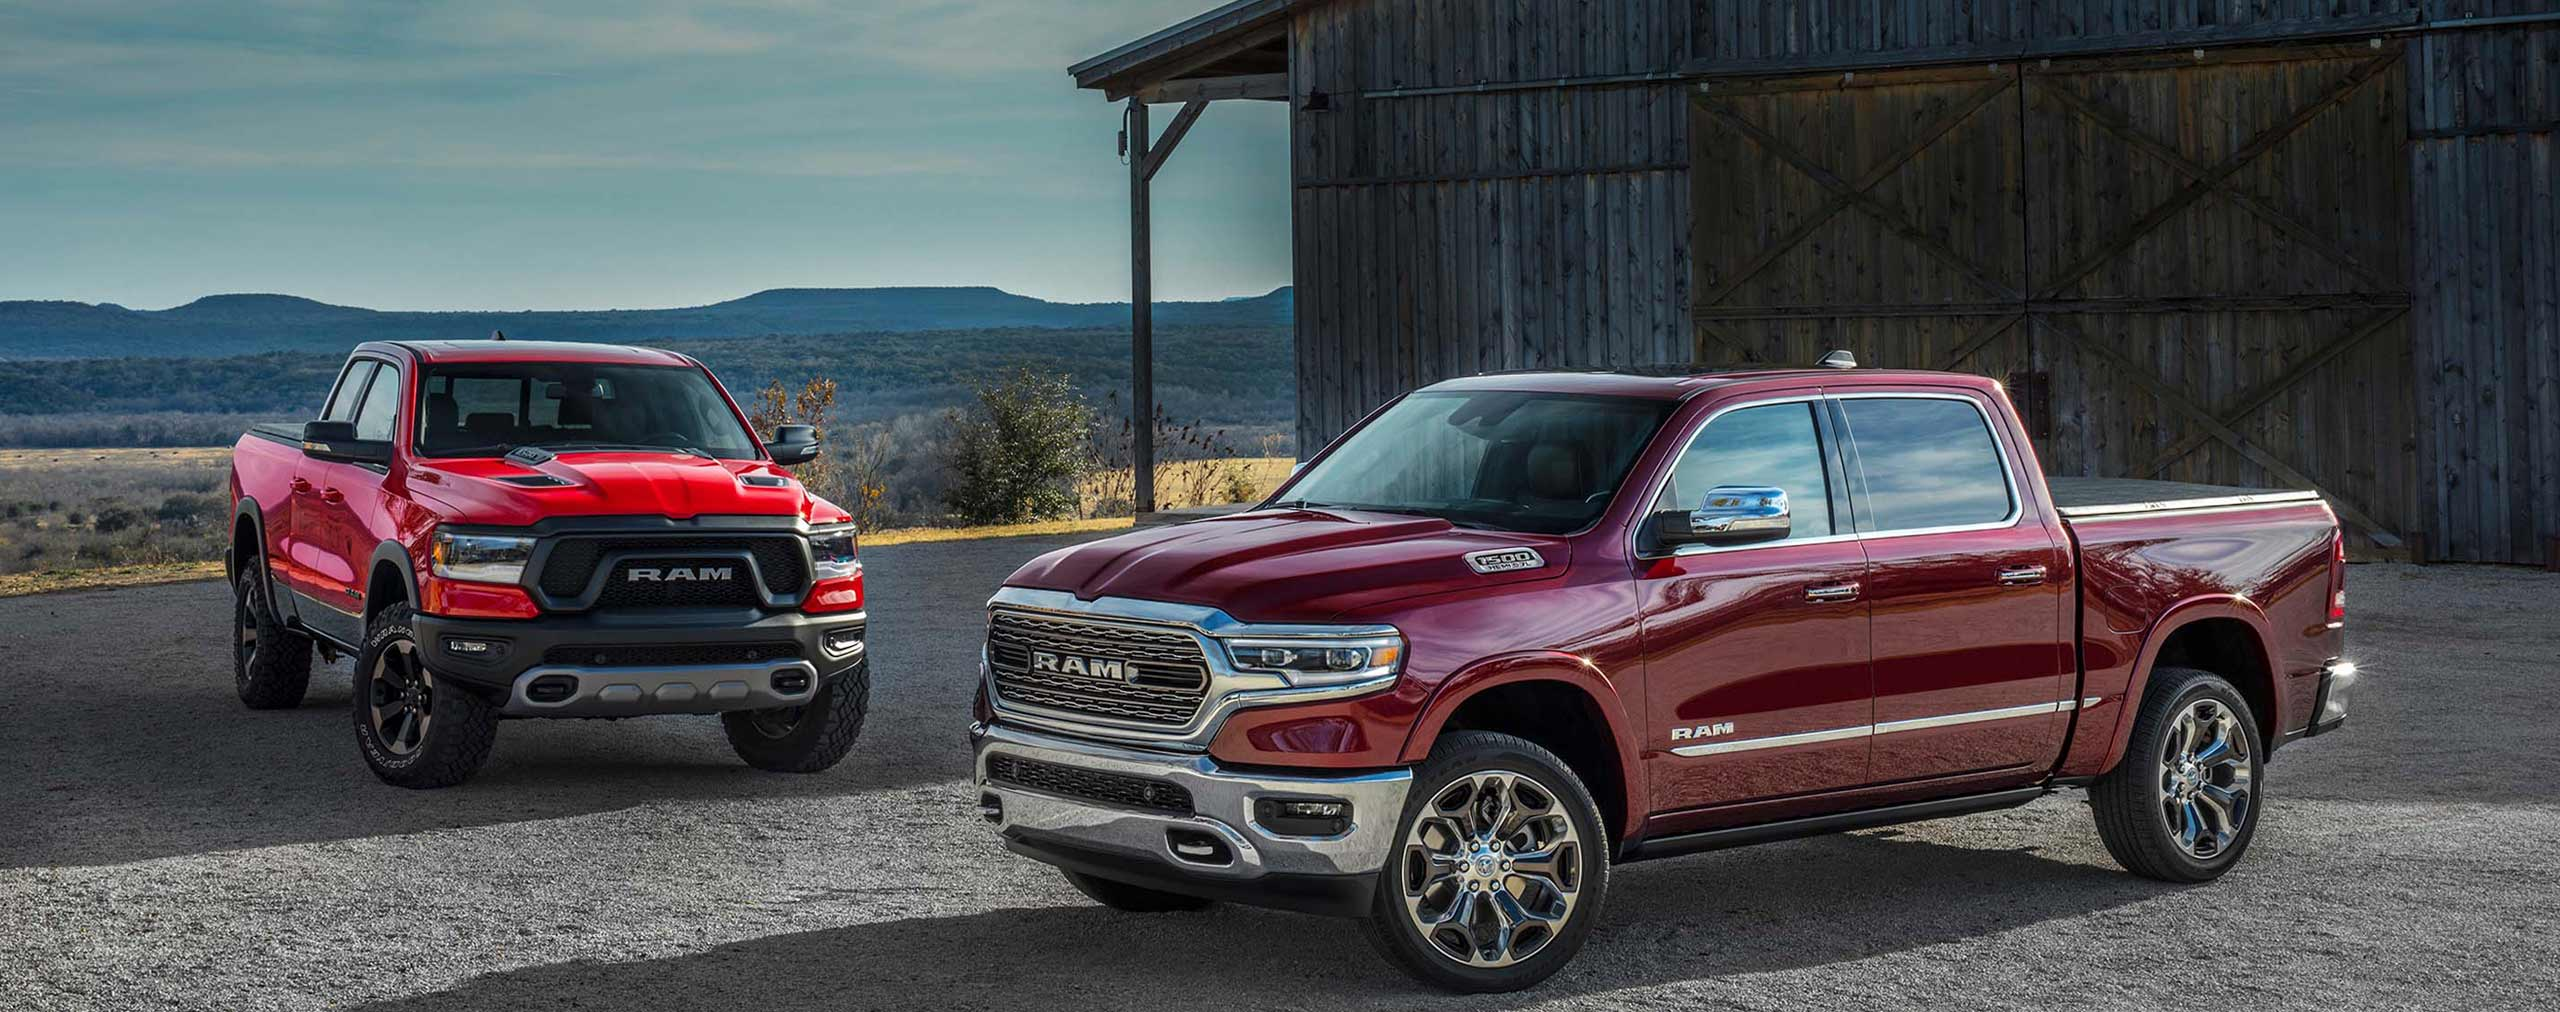 North Carolina Review 2019 RAM 1500